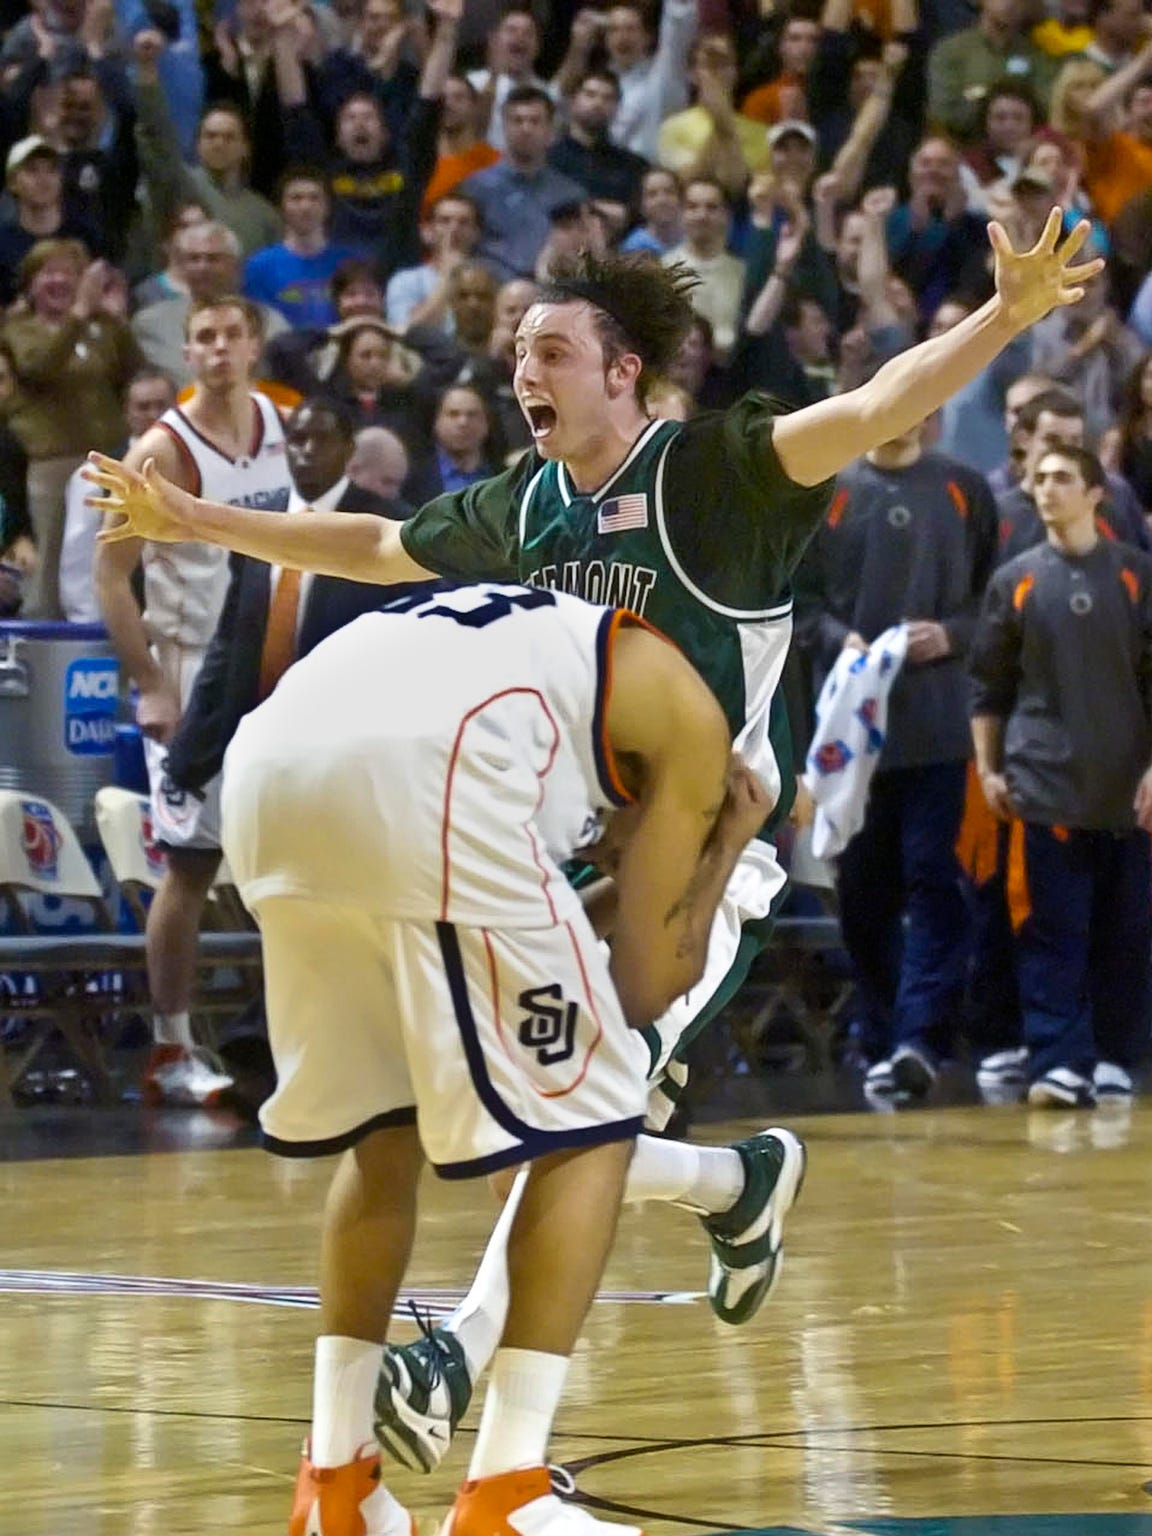 Vermont's David Hehn, seen celebrating the win over Syracuse, was the team's best defender and helped launch its three-year run with a game-winning shot in the 2003 America East championship.